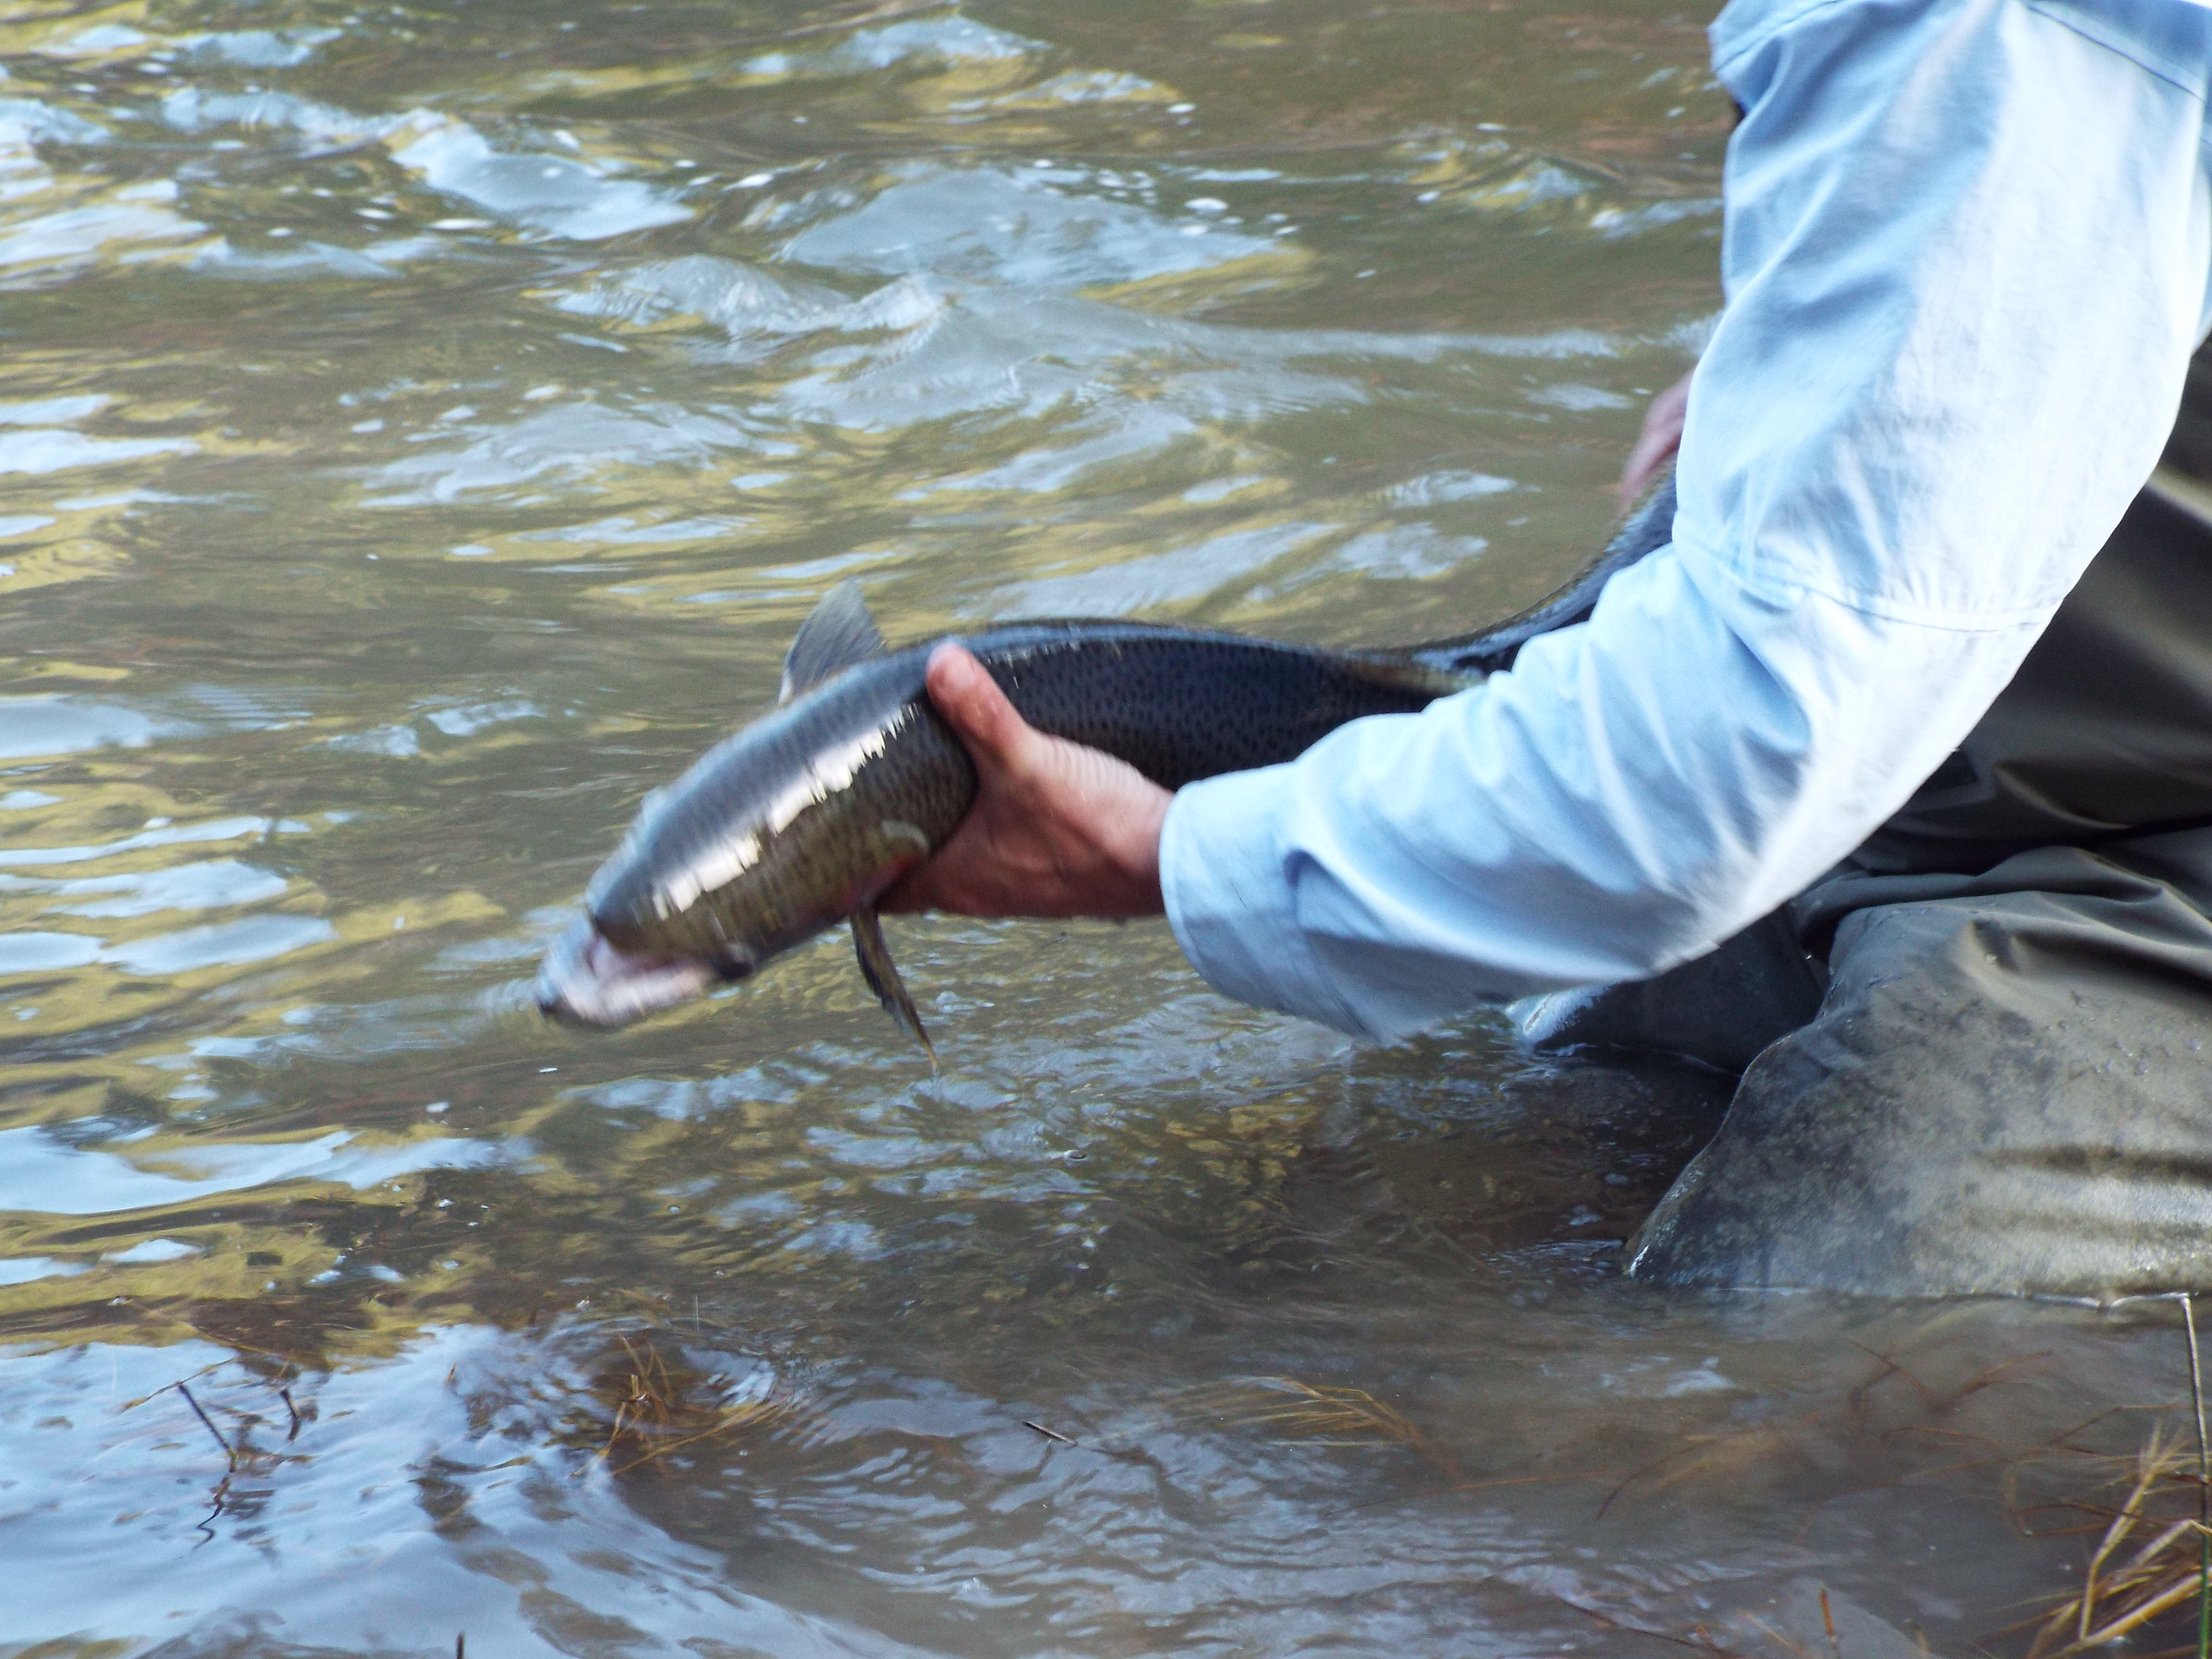 Upper salmon river weekly steelhead summary report 3 27 for Salmon river fishing reports